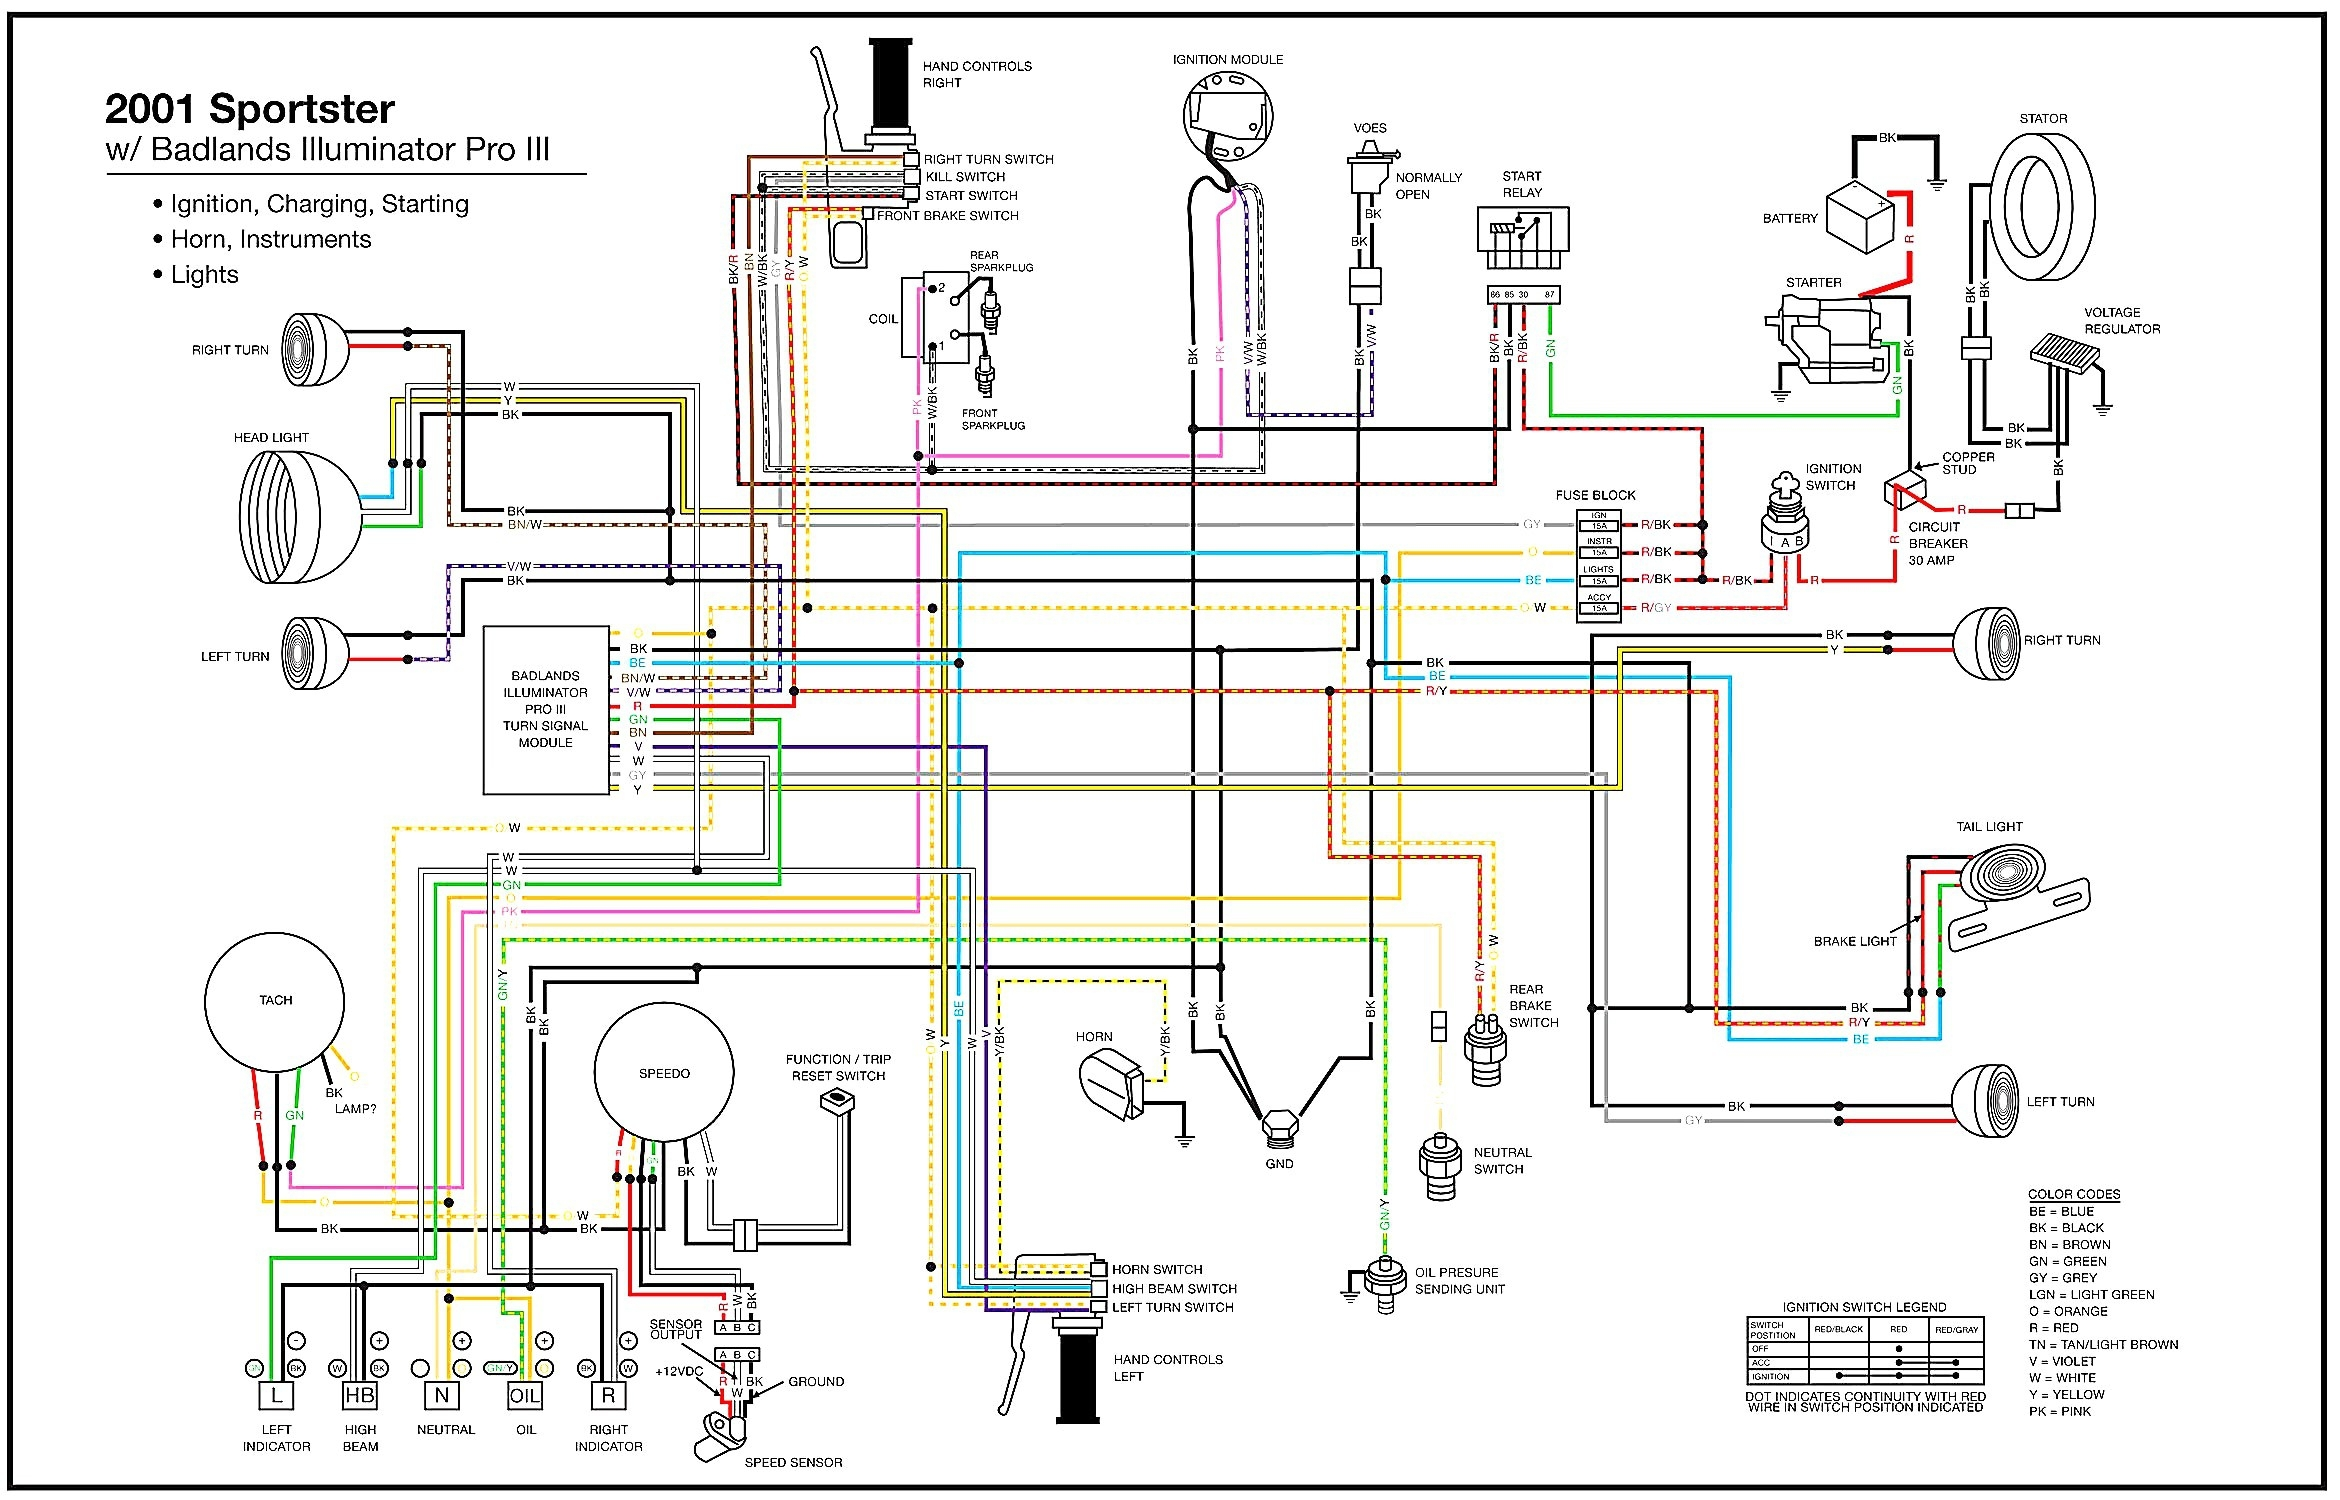 harley sportster wiring diagram Download-Badlands Turn Signal Module Wiring Diagram Collection Free Harley Davidson Wiring Diagrams Best Harley Davidson 12-a